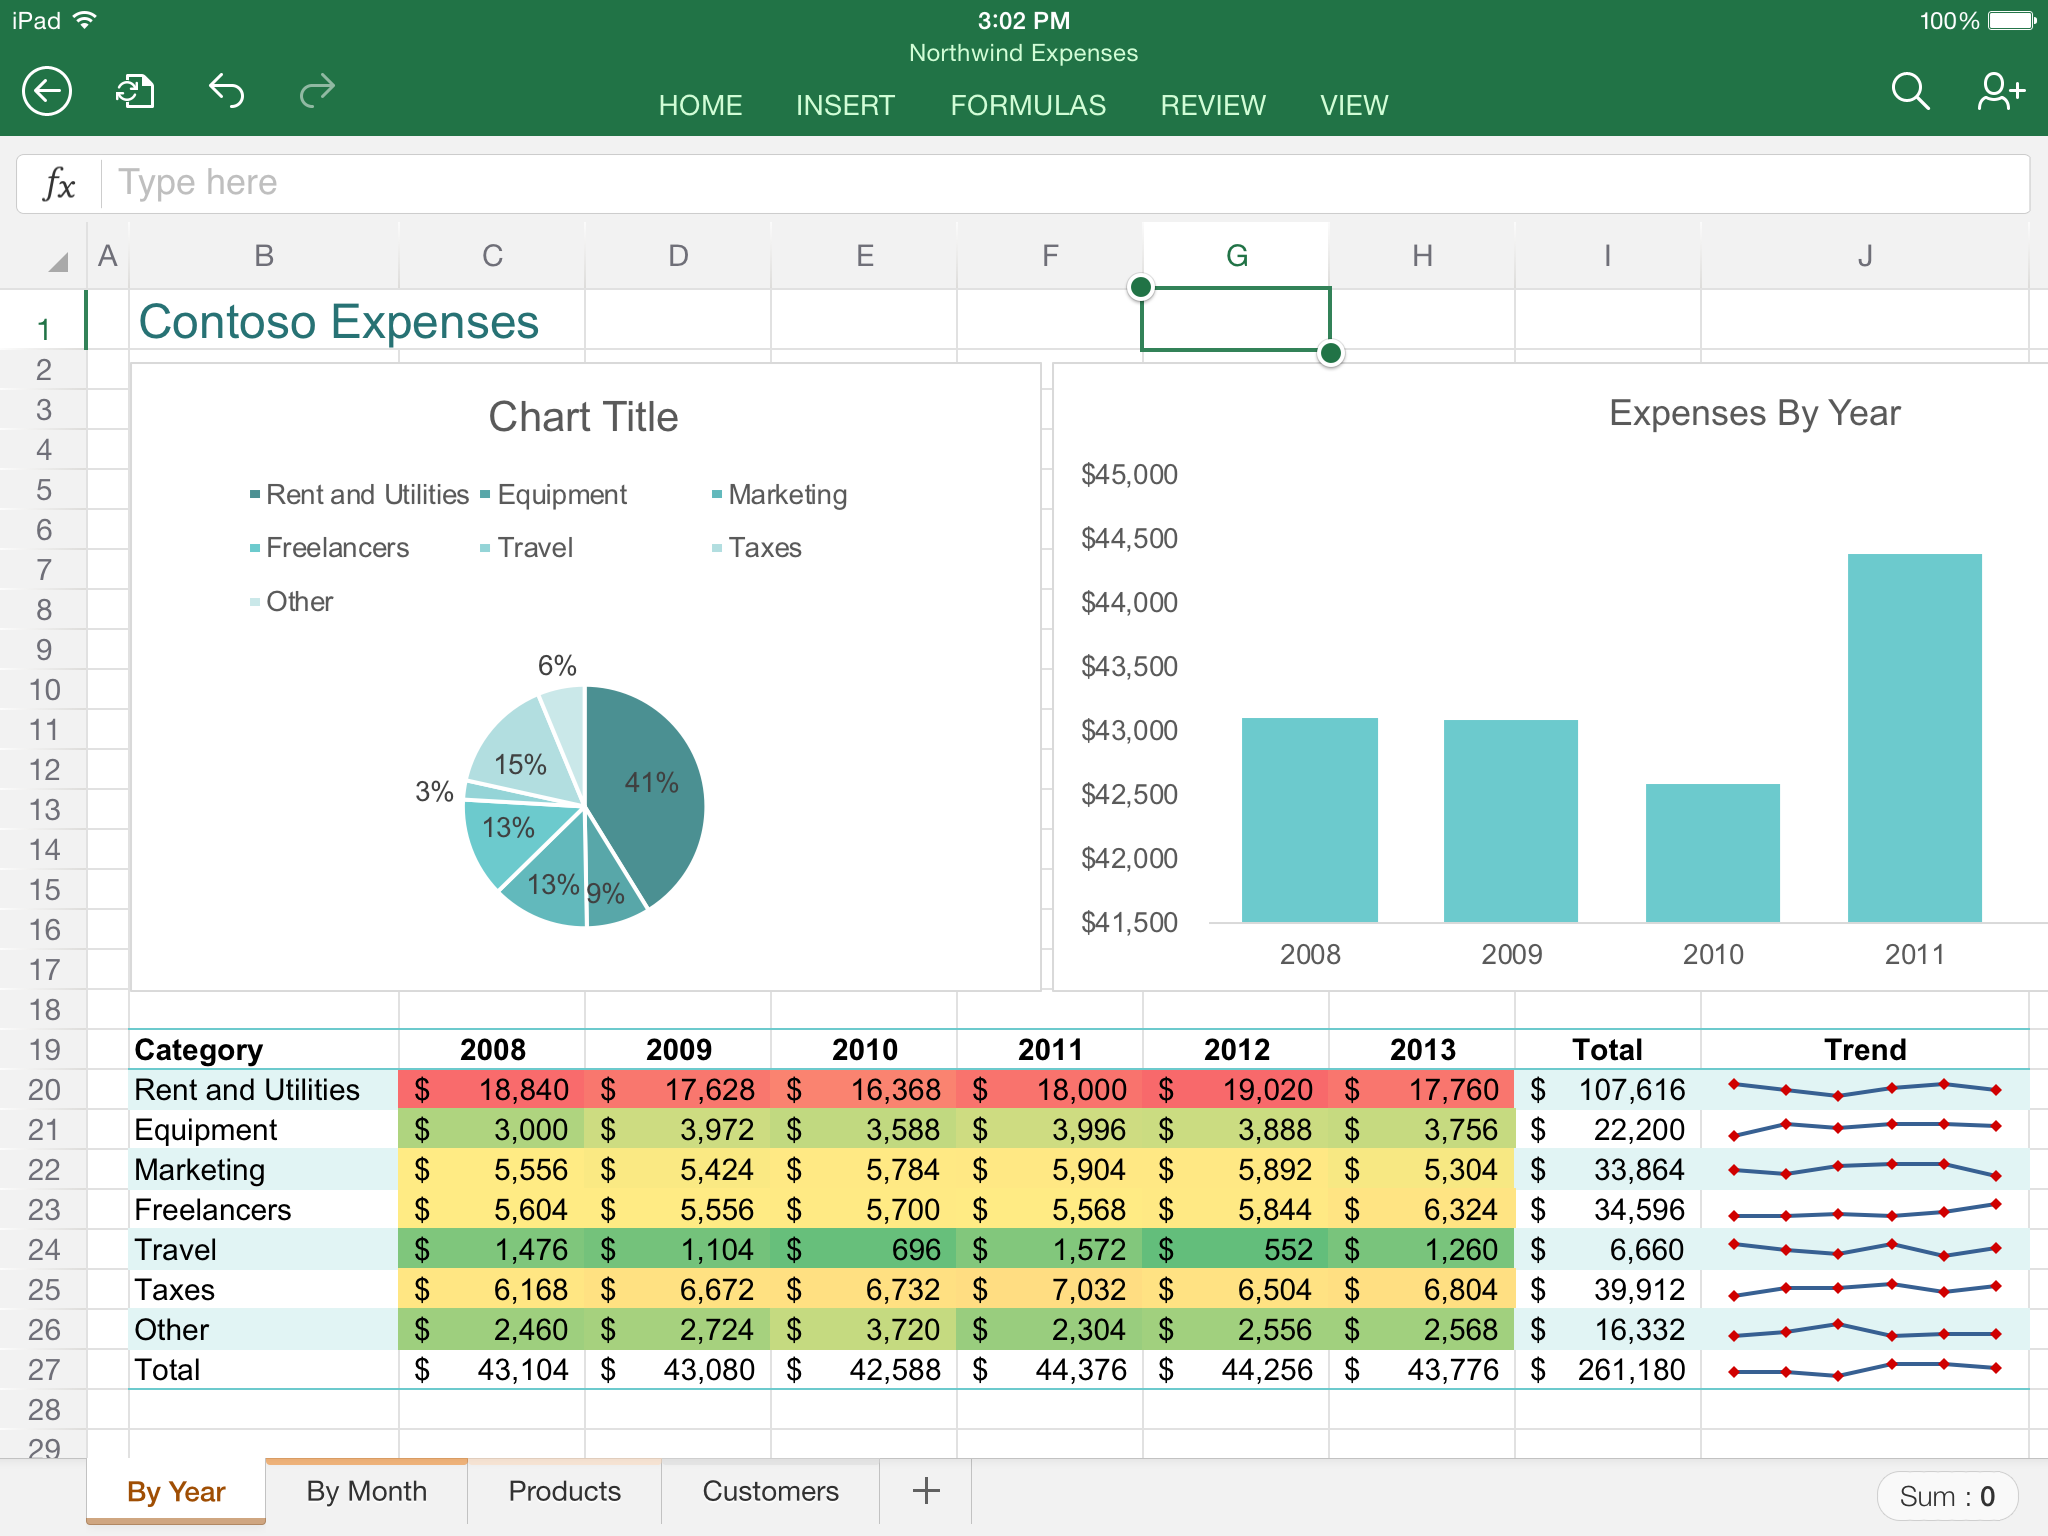 Ediblewildsus  Winsome App Highlight Excel  Mobile Digital Now With Goodlooking Excel In Action With Charming Data Source Excel Also Microsoft Excel Amortization Schedule In Addition Excel To Iif And How To Create Flow Charts In Excel As Well As Unhide Tabs Excel Additionally Pearson Correlation Coefficient Excel From Youstonybrookedu With Ediblewildsus  Goodlooking App Highlight Excel  Mobile Digital Now With Charming Excel In Action And Winsome Data Source Excel Also Microsoft Excel Amortization Schedule In Addition Excel To Iif From Youstonybrookedu